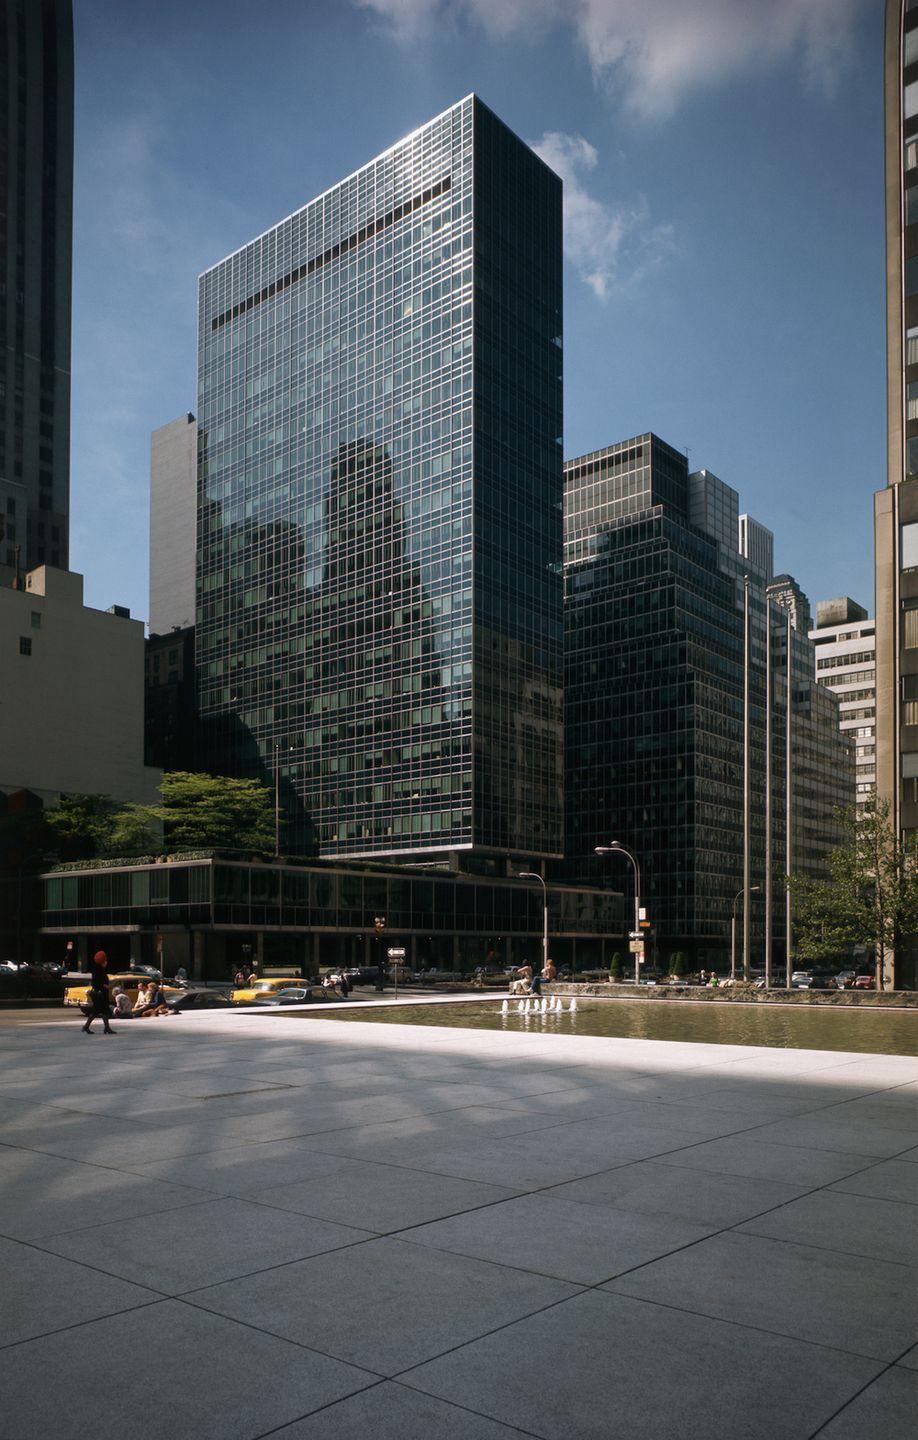 "<p>The <a href=""http://www.som.com/projects/lever_house"" rel=""nofollow noopener"" target=""_blank"" data-ylk=""slk:Lever House"" class=""link rapid-noclick-resp"">Lever House</a> is completed and opens on April 29, ushering in the glass-walled International Style that would become the trend for businesses through the decade.</p>"